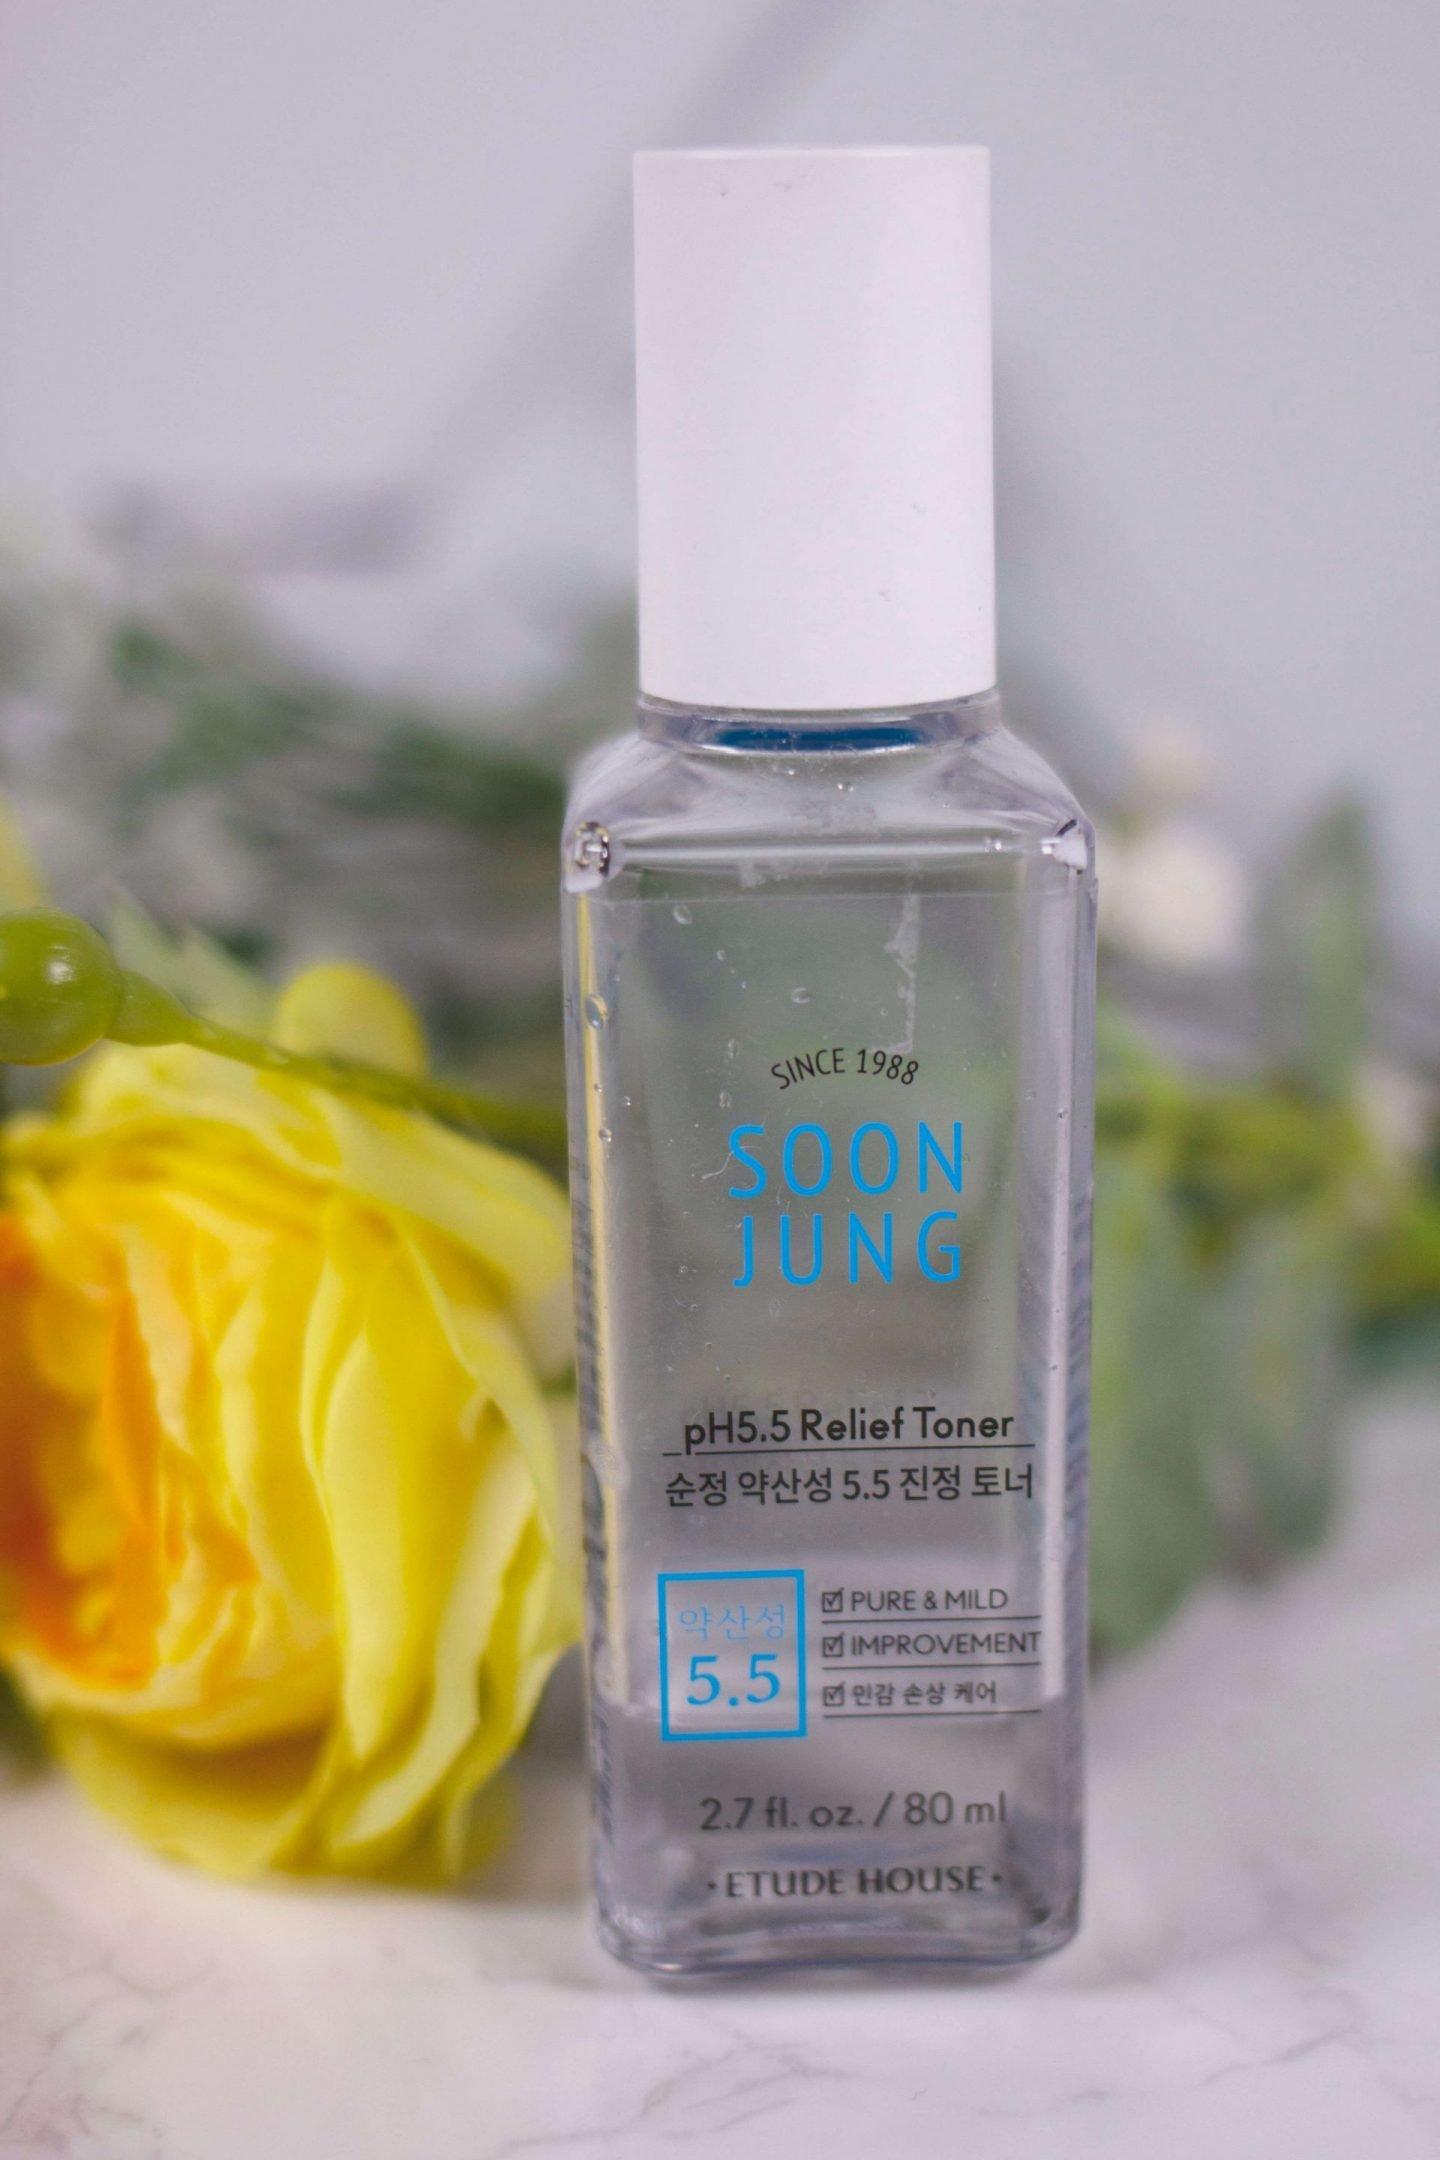 etude house soonjung pH 5.5 relief toner